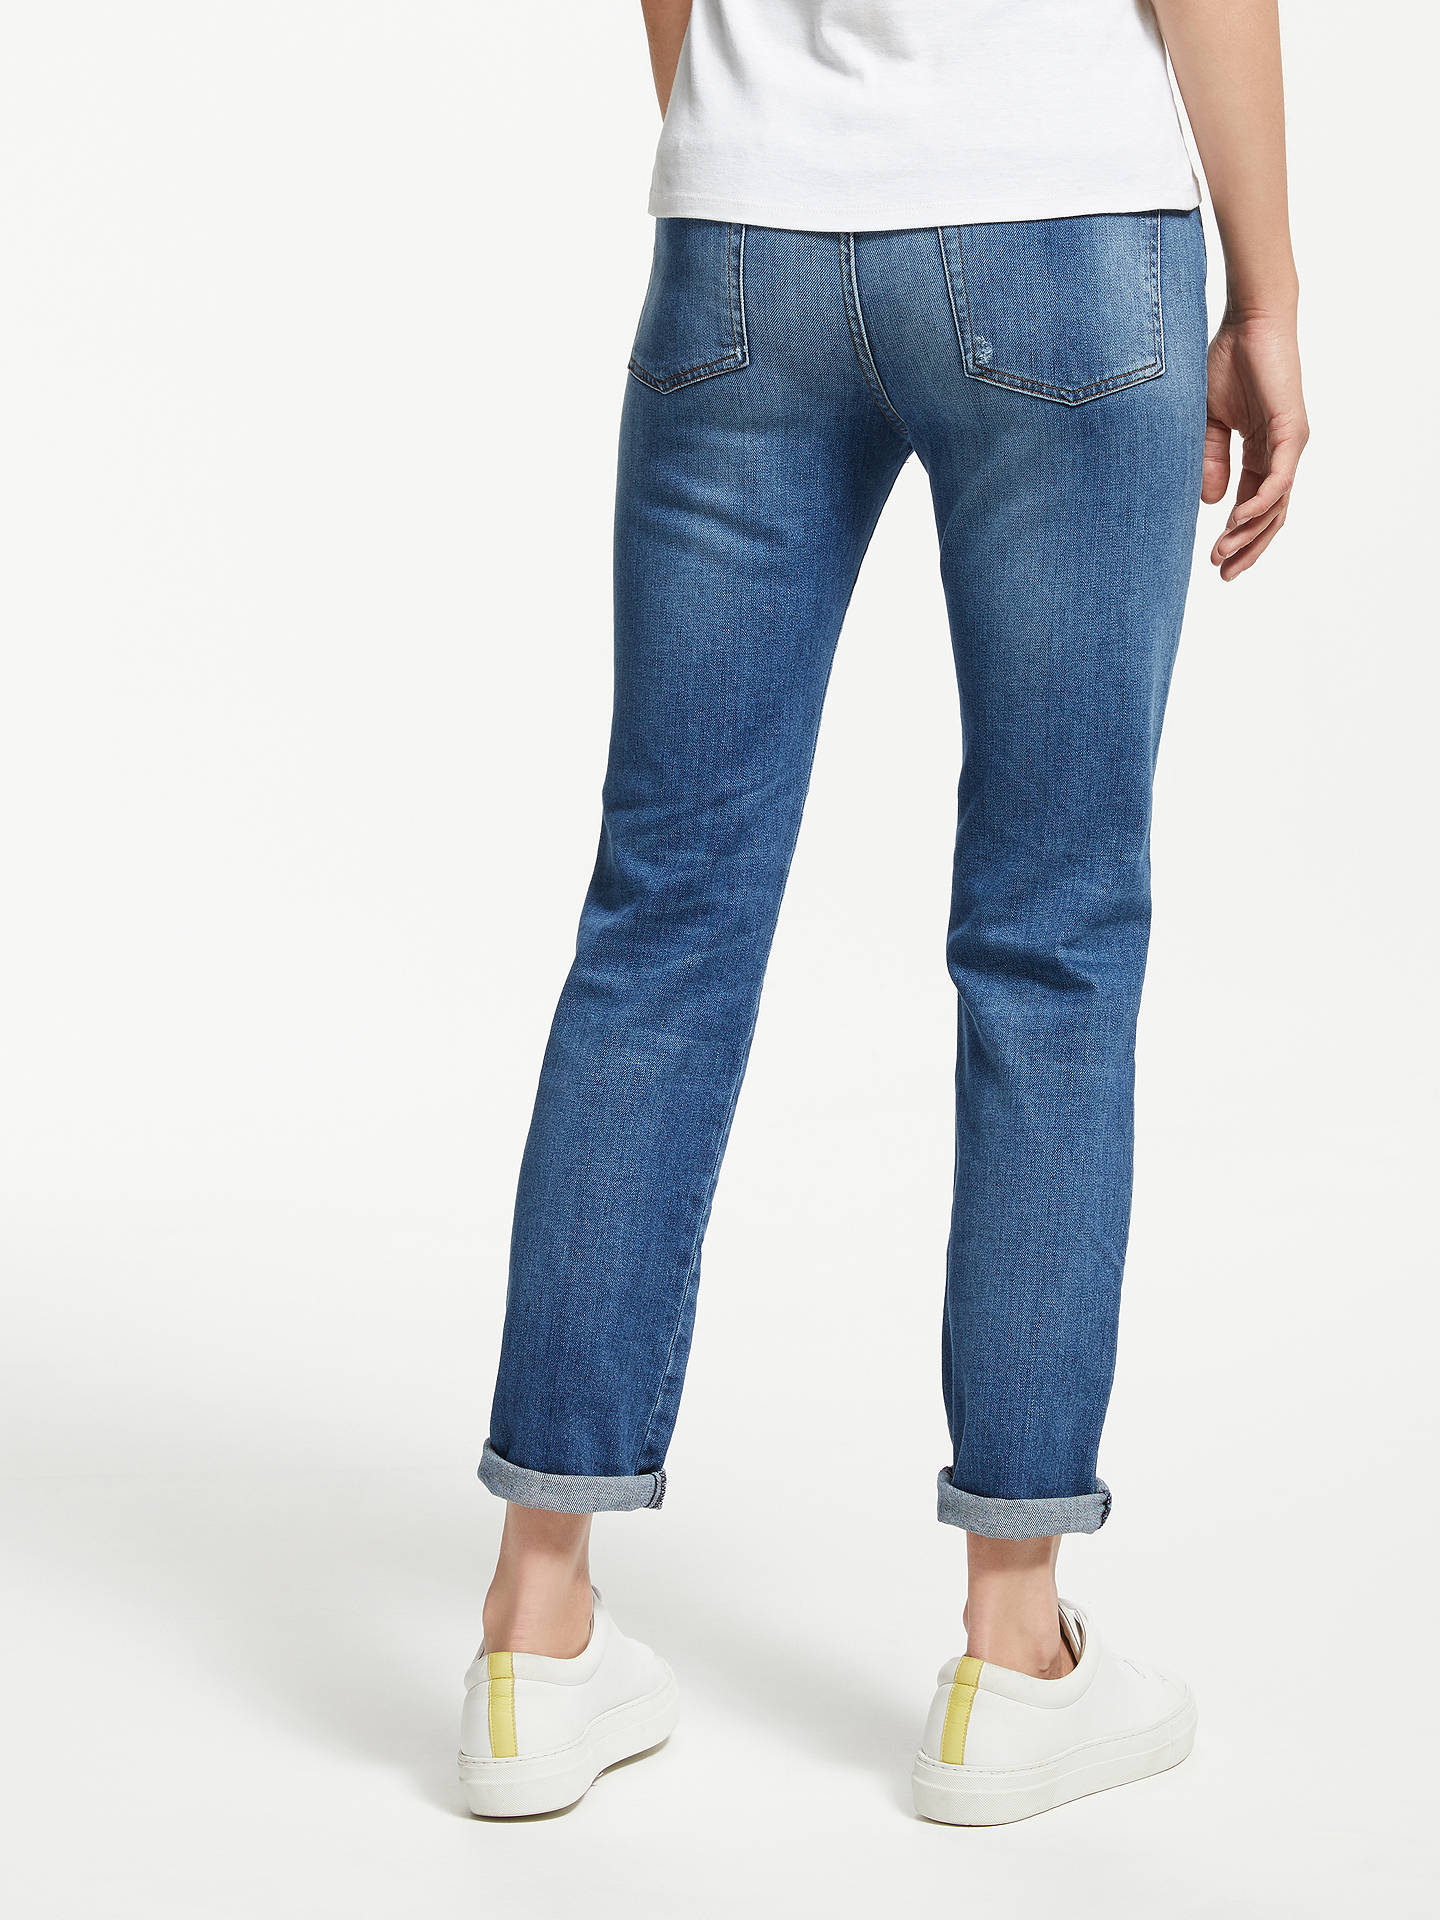 Buy 7 For All Mankind Erin High Waist Slim Jeans, Lounge, 26 Online at johnlewis.com